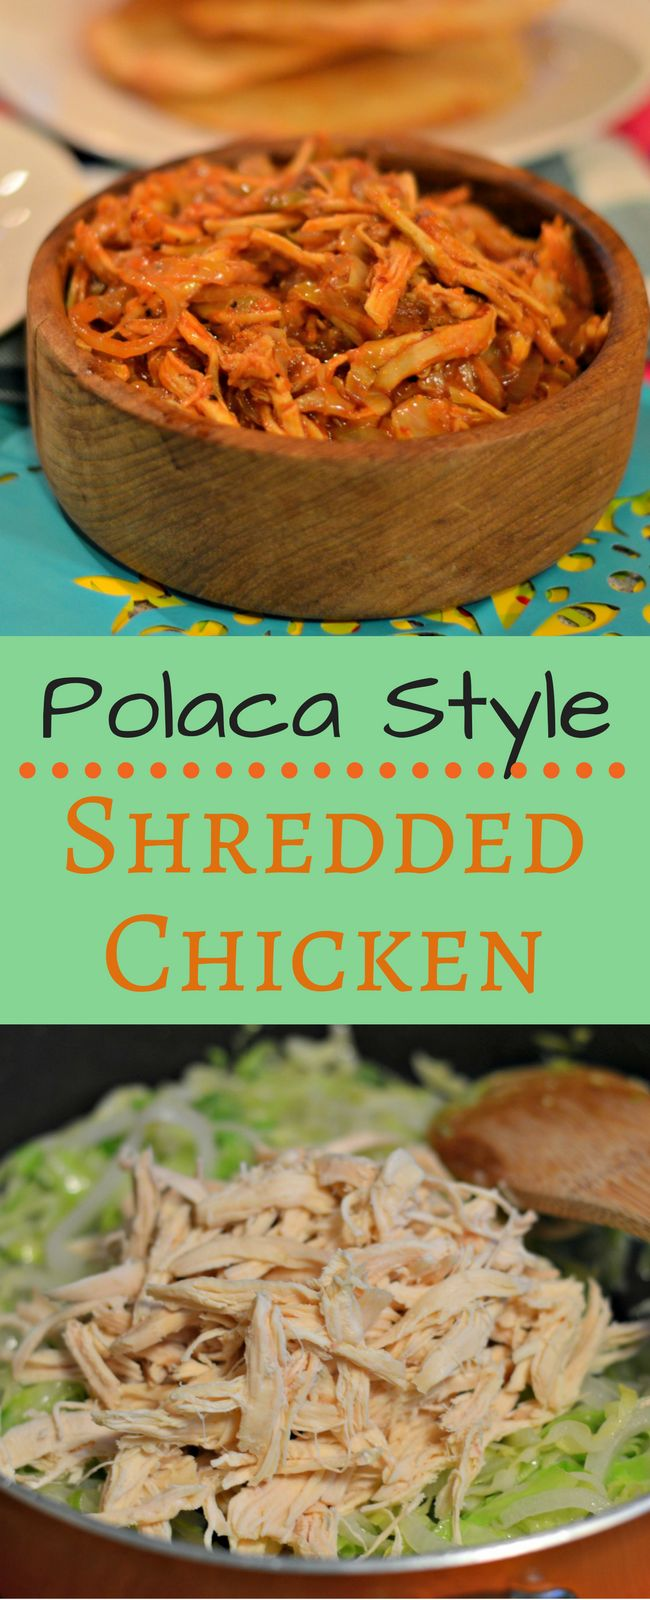 This Polaca Style Shredded Chicken is a traditional Mexican meal that is perfect for any celebration. #AddFlavor #ad